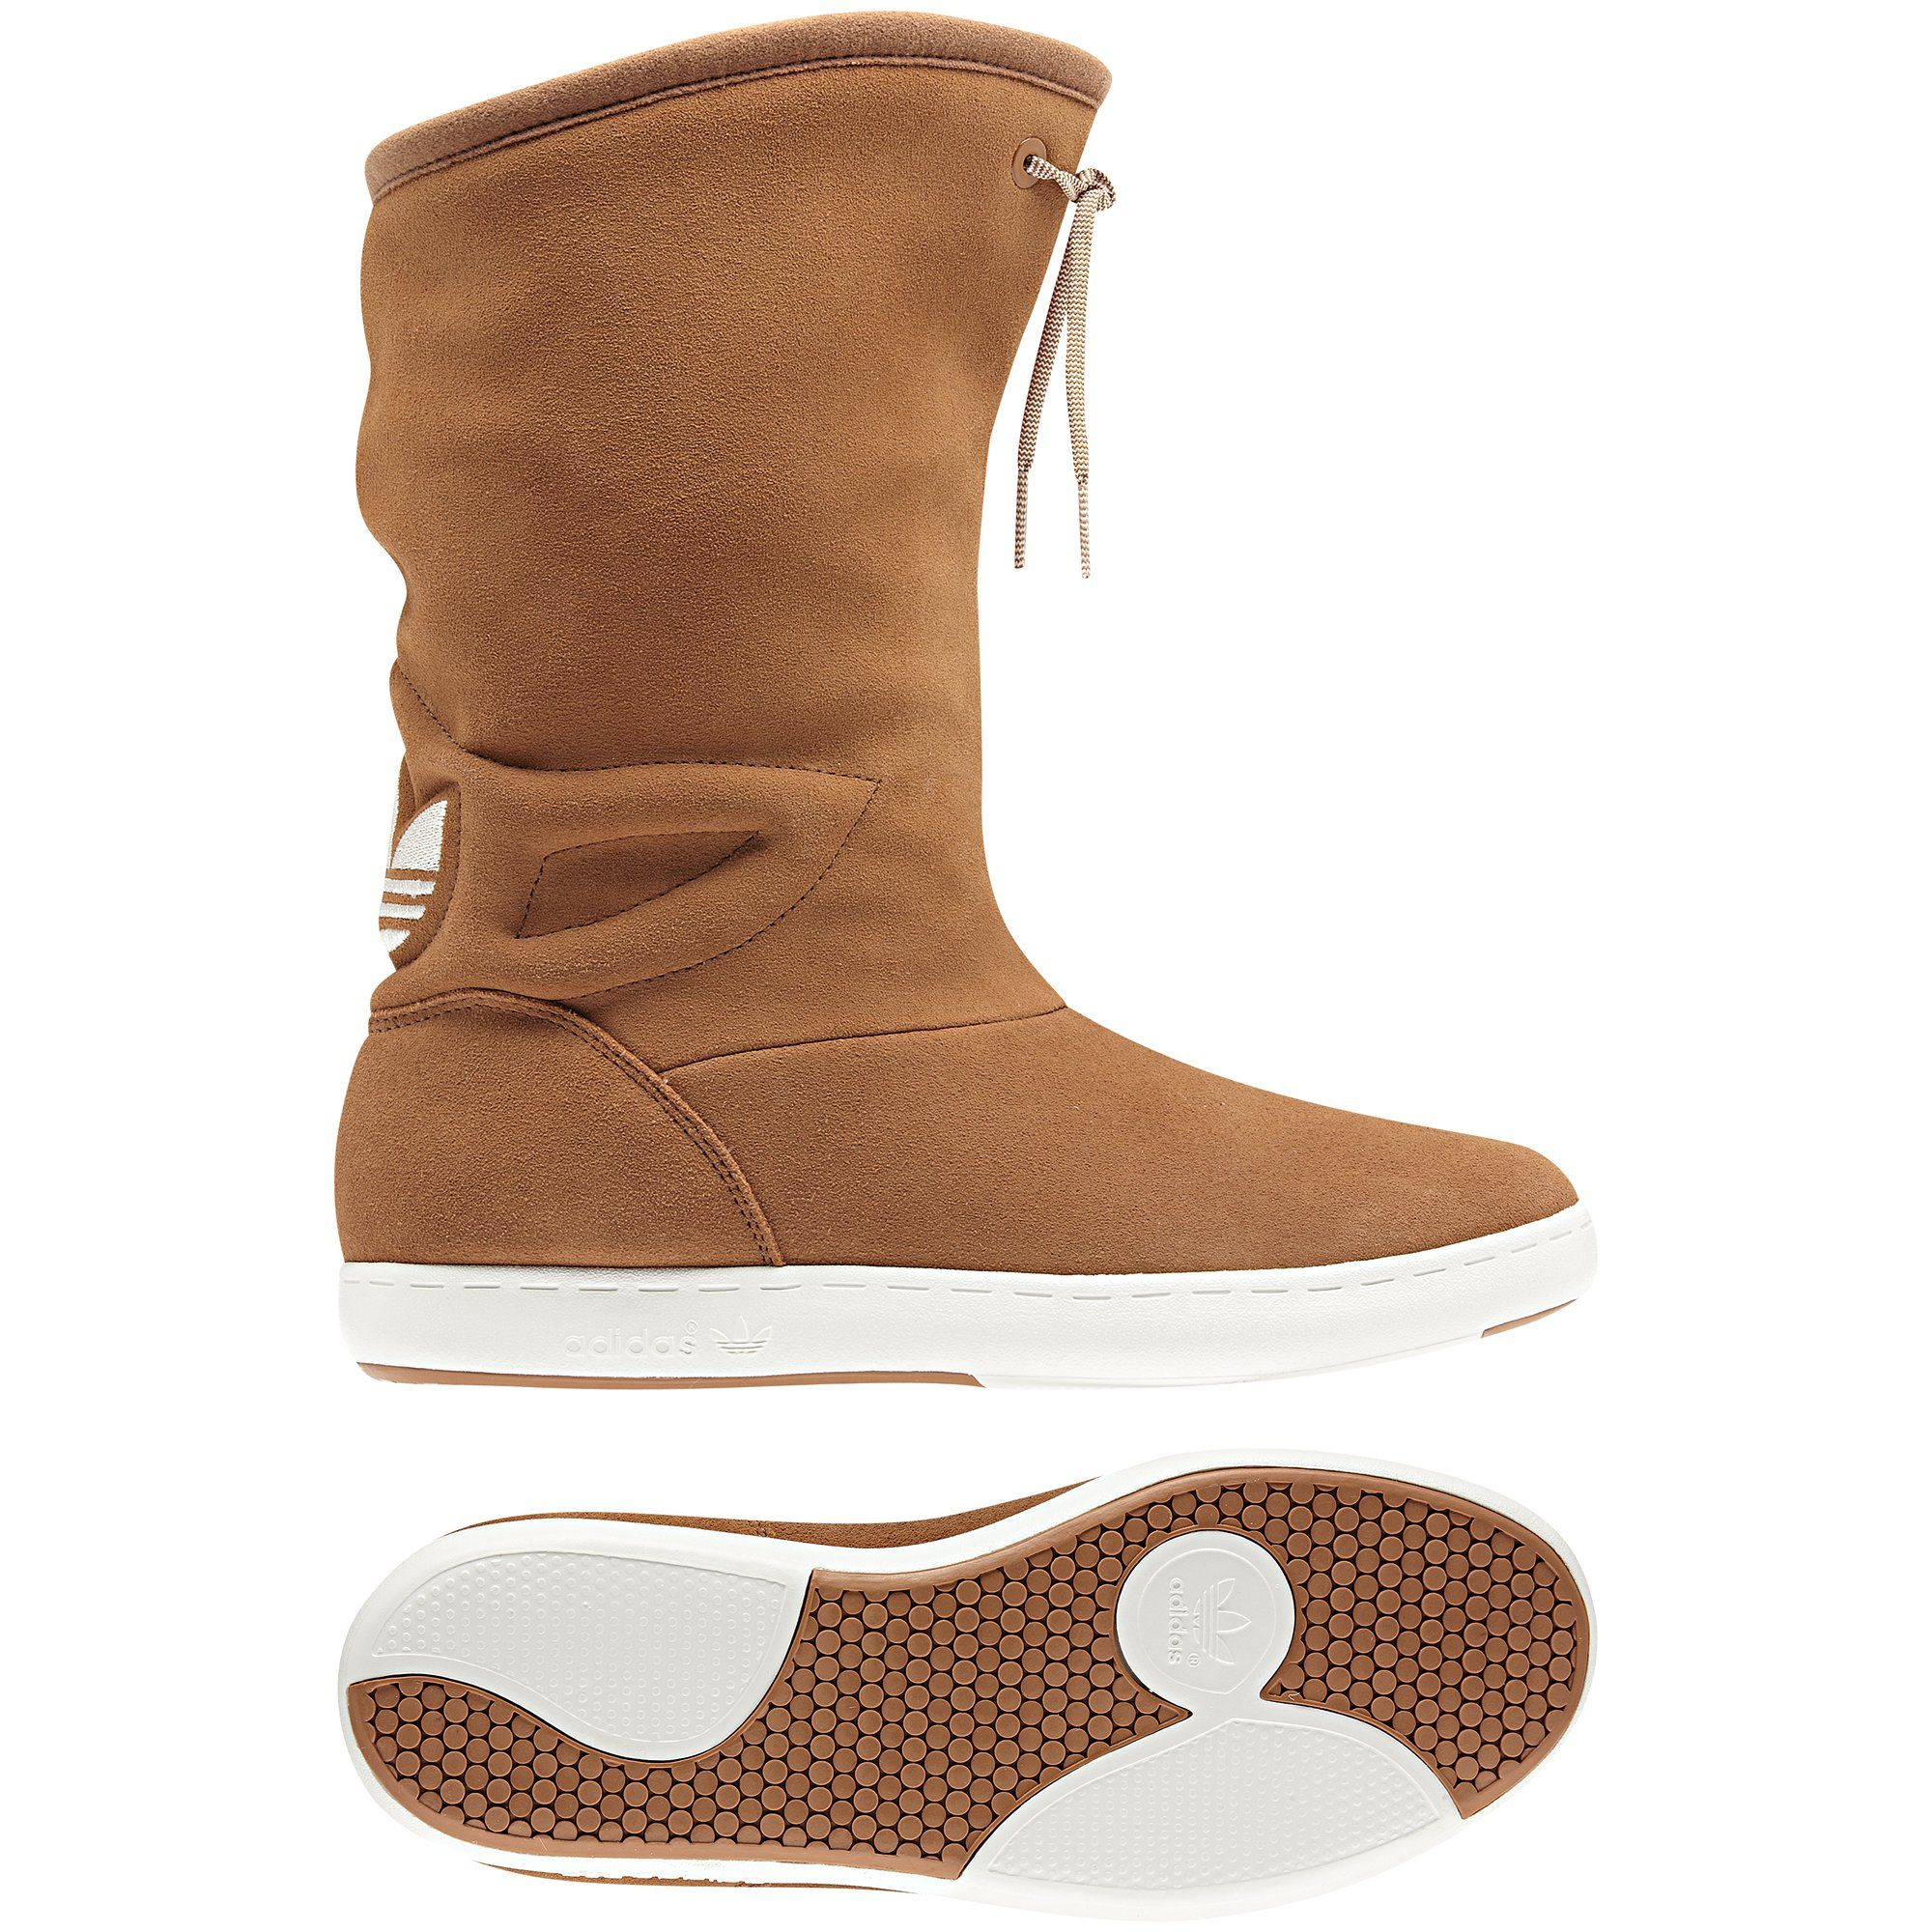 new product 23965 e1b72 Adidas winter boots LOVE.